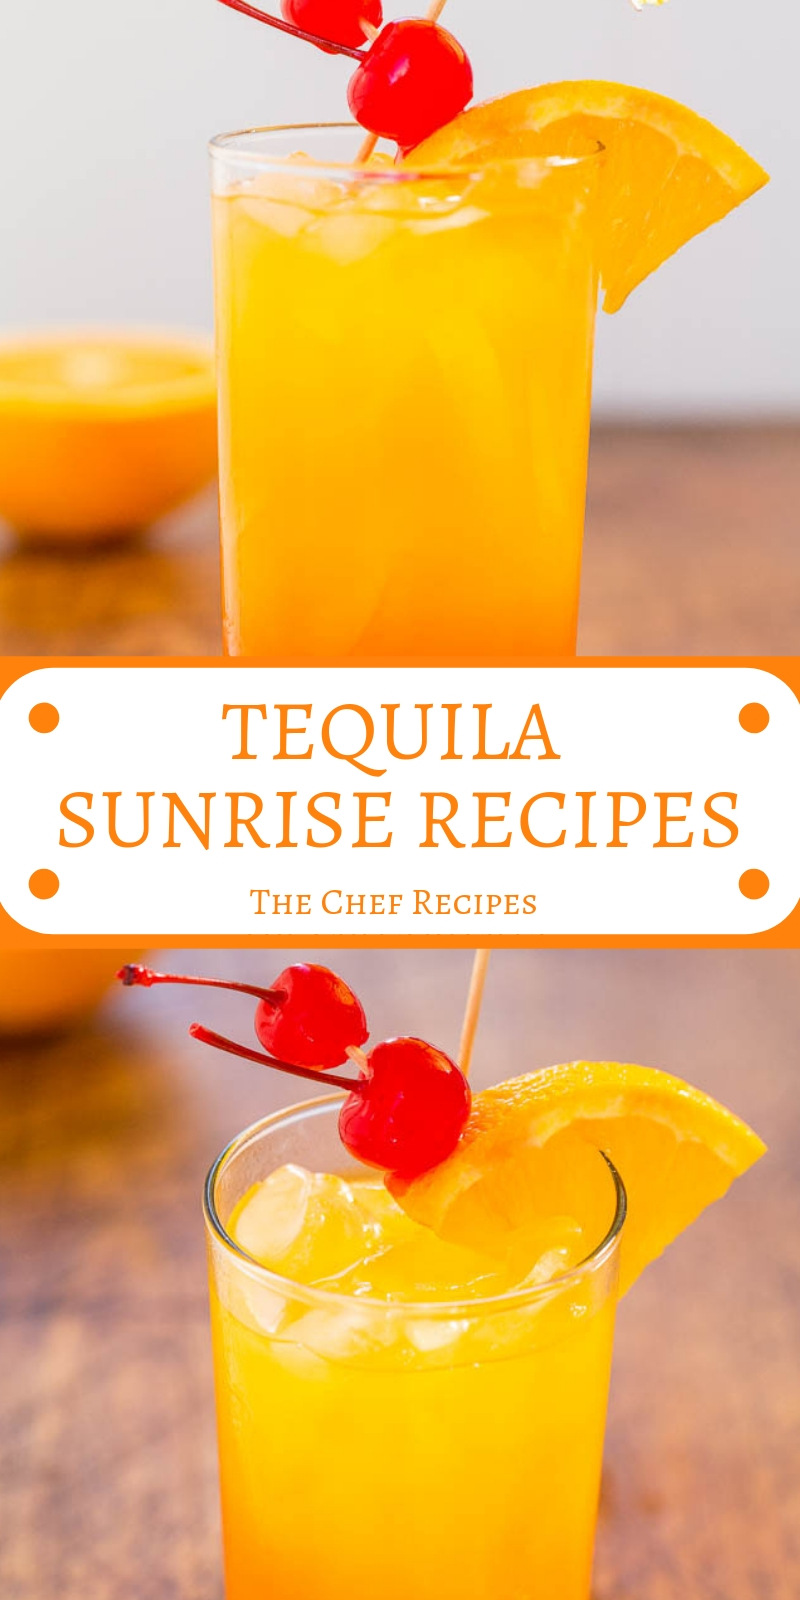 TEQUILA SUNRISE RECIPES